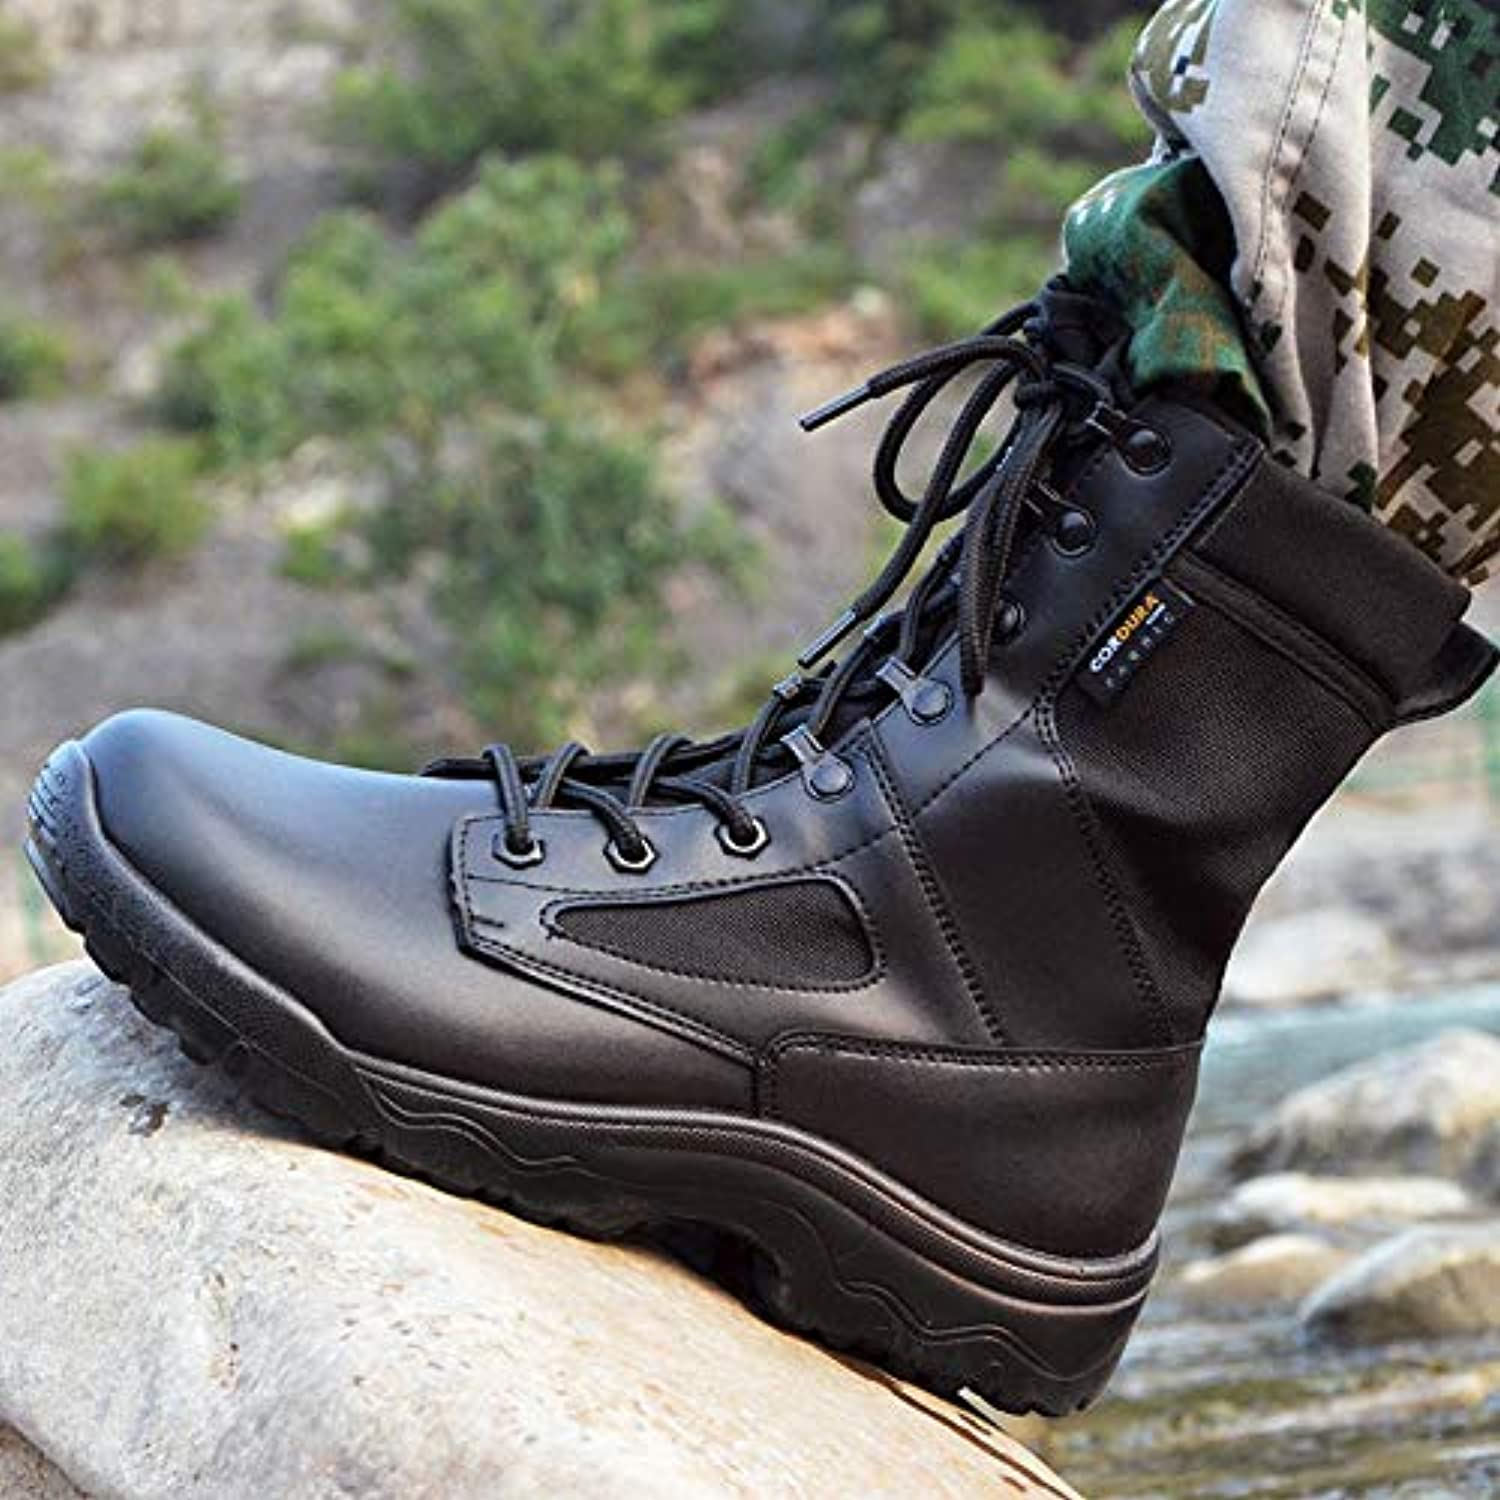 HCBYJ shoes Ultralight combat boots tactical boots lightweight breathable military shoes men's special forces training